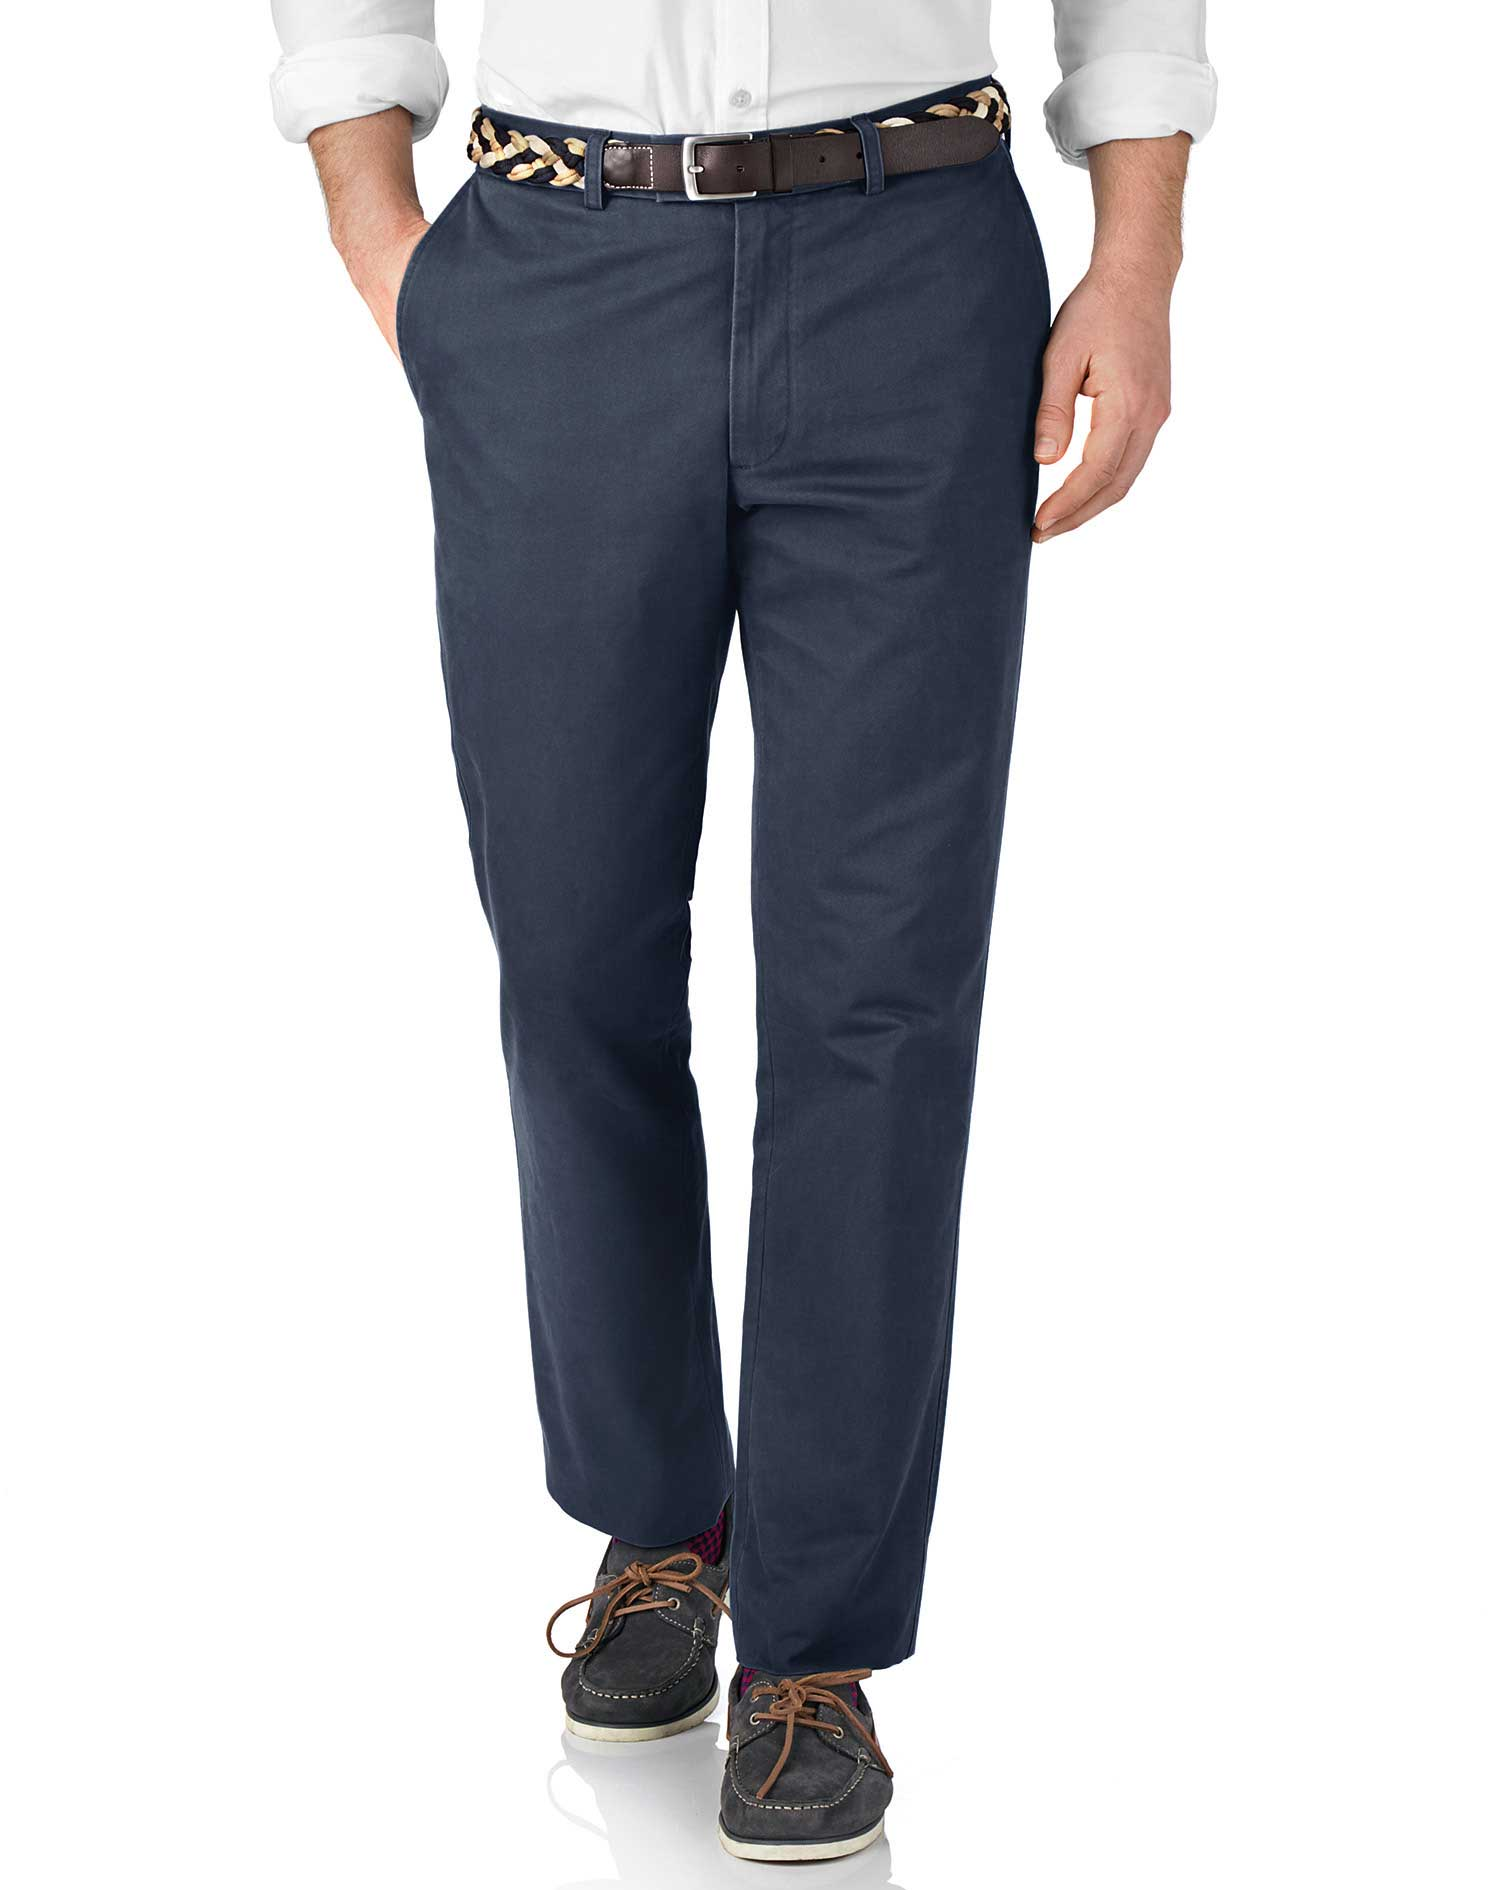 Airforce Blue Slim Fit Flat Front Cotton Chino Trousers Size W30 L30 by Charles Tyrwhitt